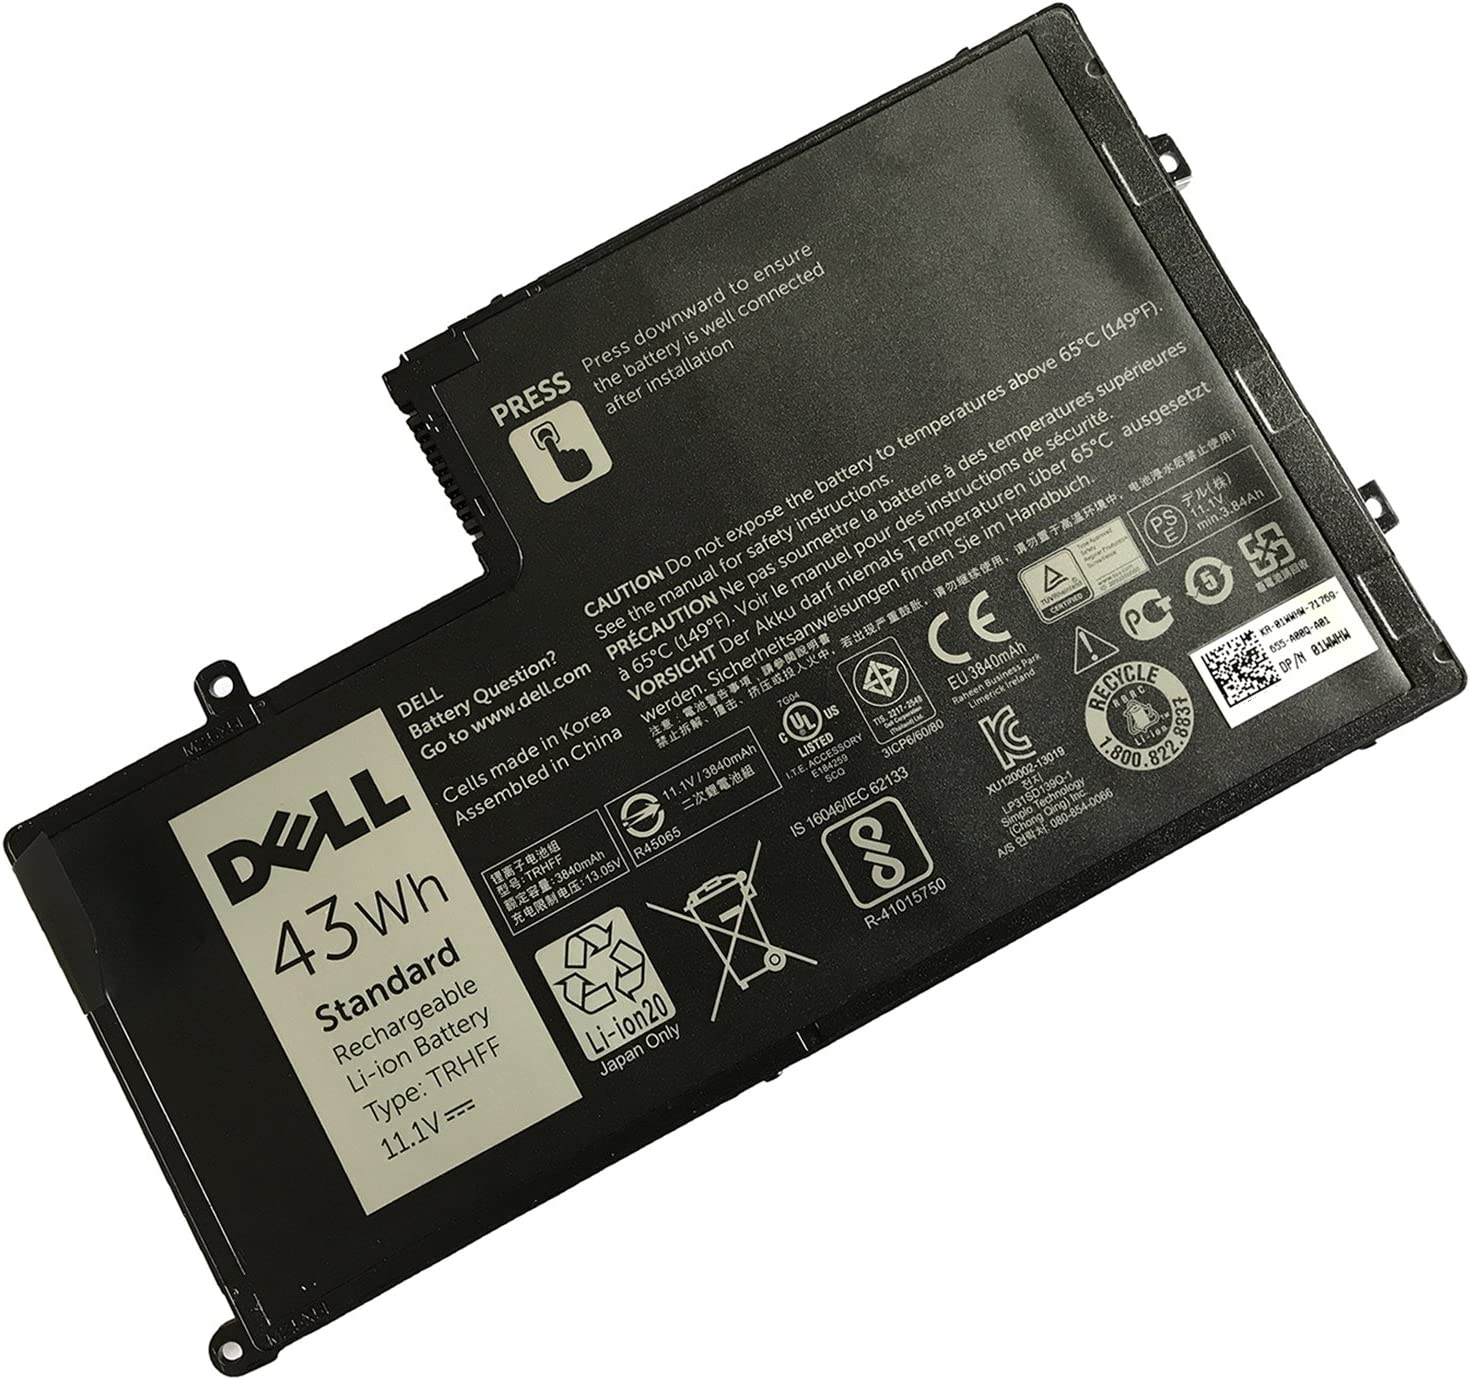 Dell TRHFF Notebook Battery 11.1V 43WH for DELL Inspiron 14 5447 15 5547 DELL Latitude 3450 3550 Also be Compatible with OPD19 (7.6V 58WH) Best OEM Quality